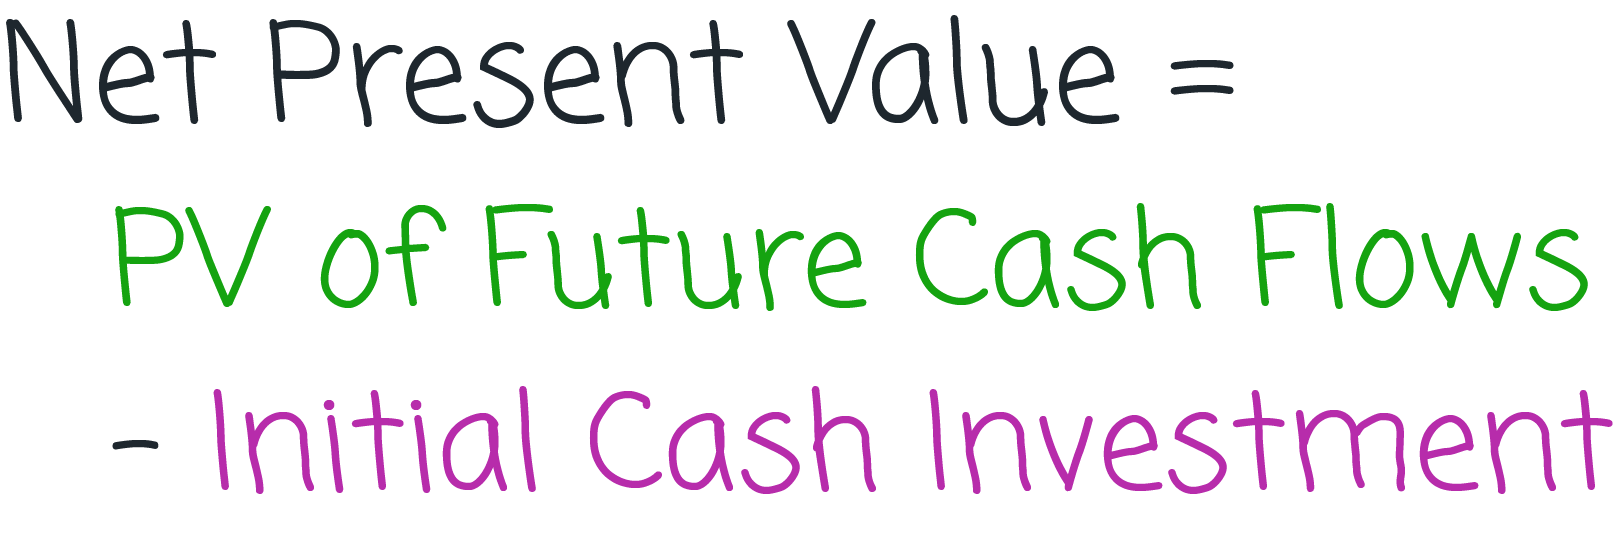 Net Present Value (NPV) calculation